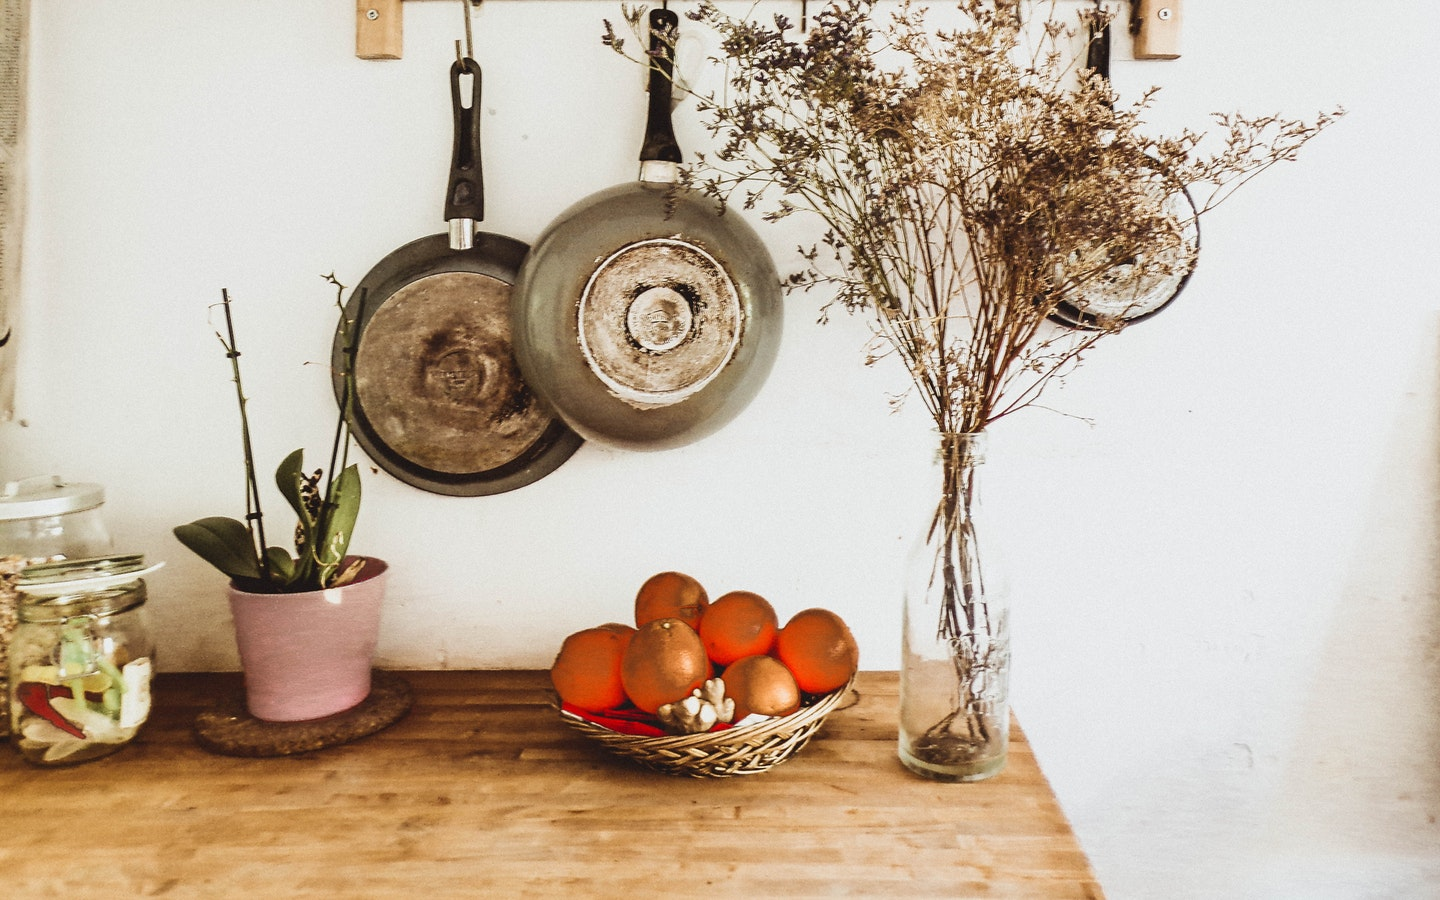 Organize your home smartly by getting a kitchen pegboard